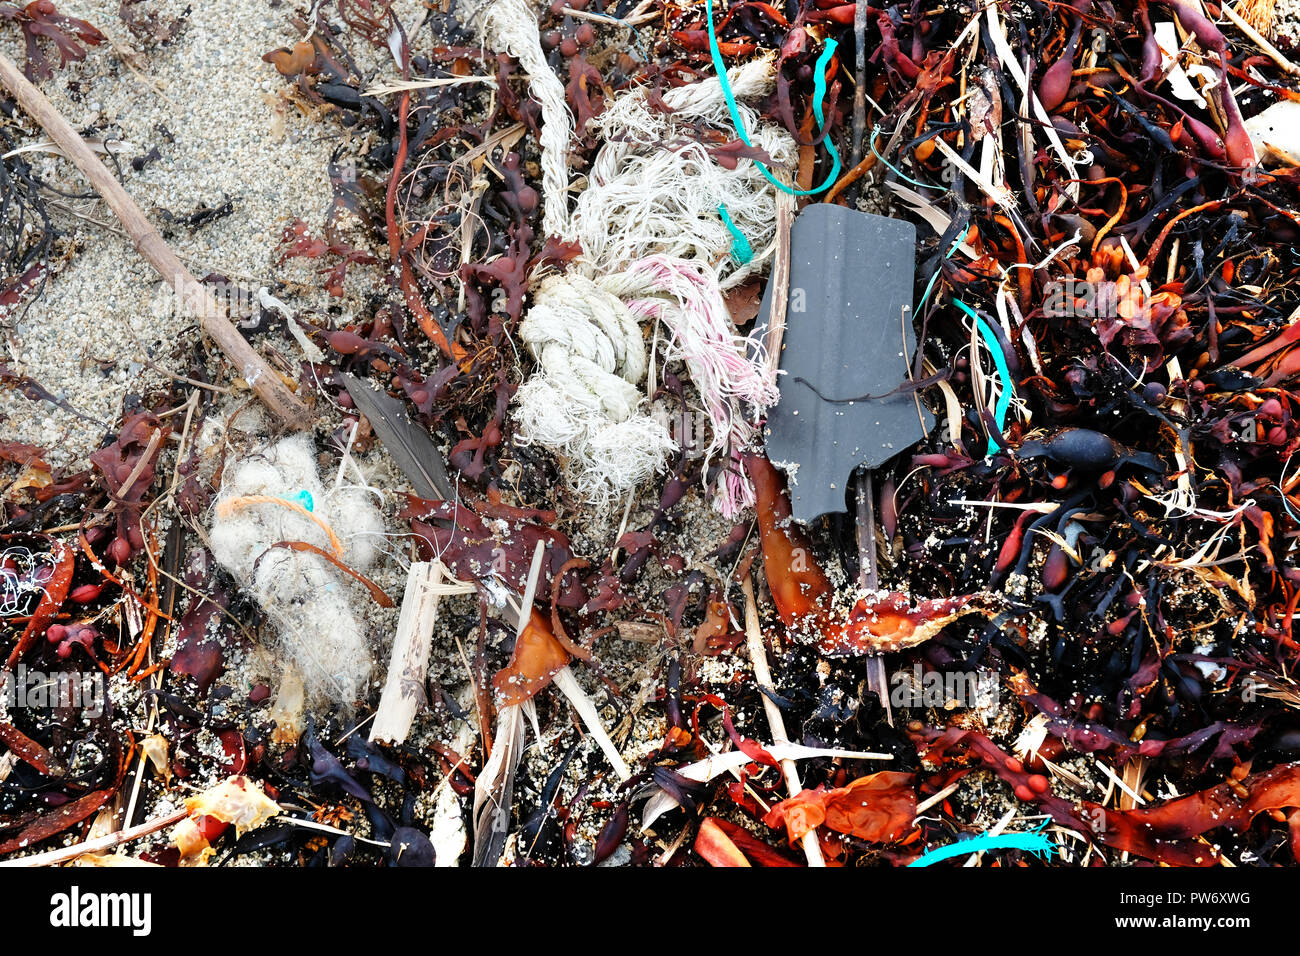 Plastic rubbish causing pollution problems on a sandy beach - John Gollop - Stock Image